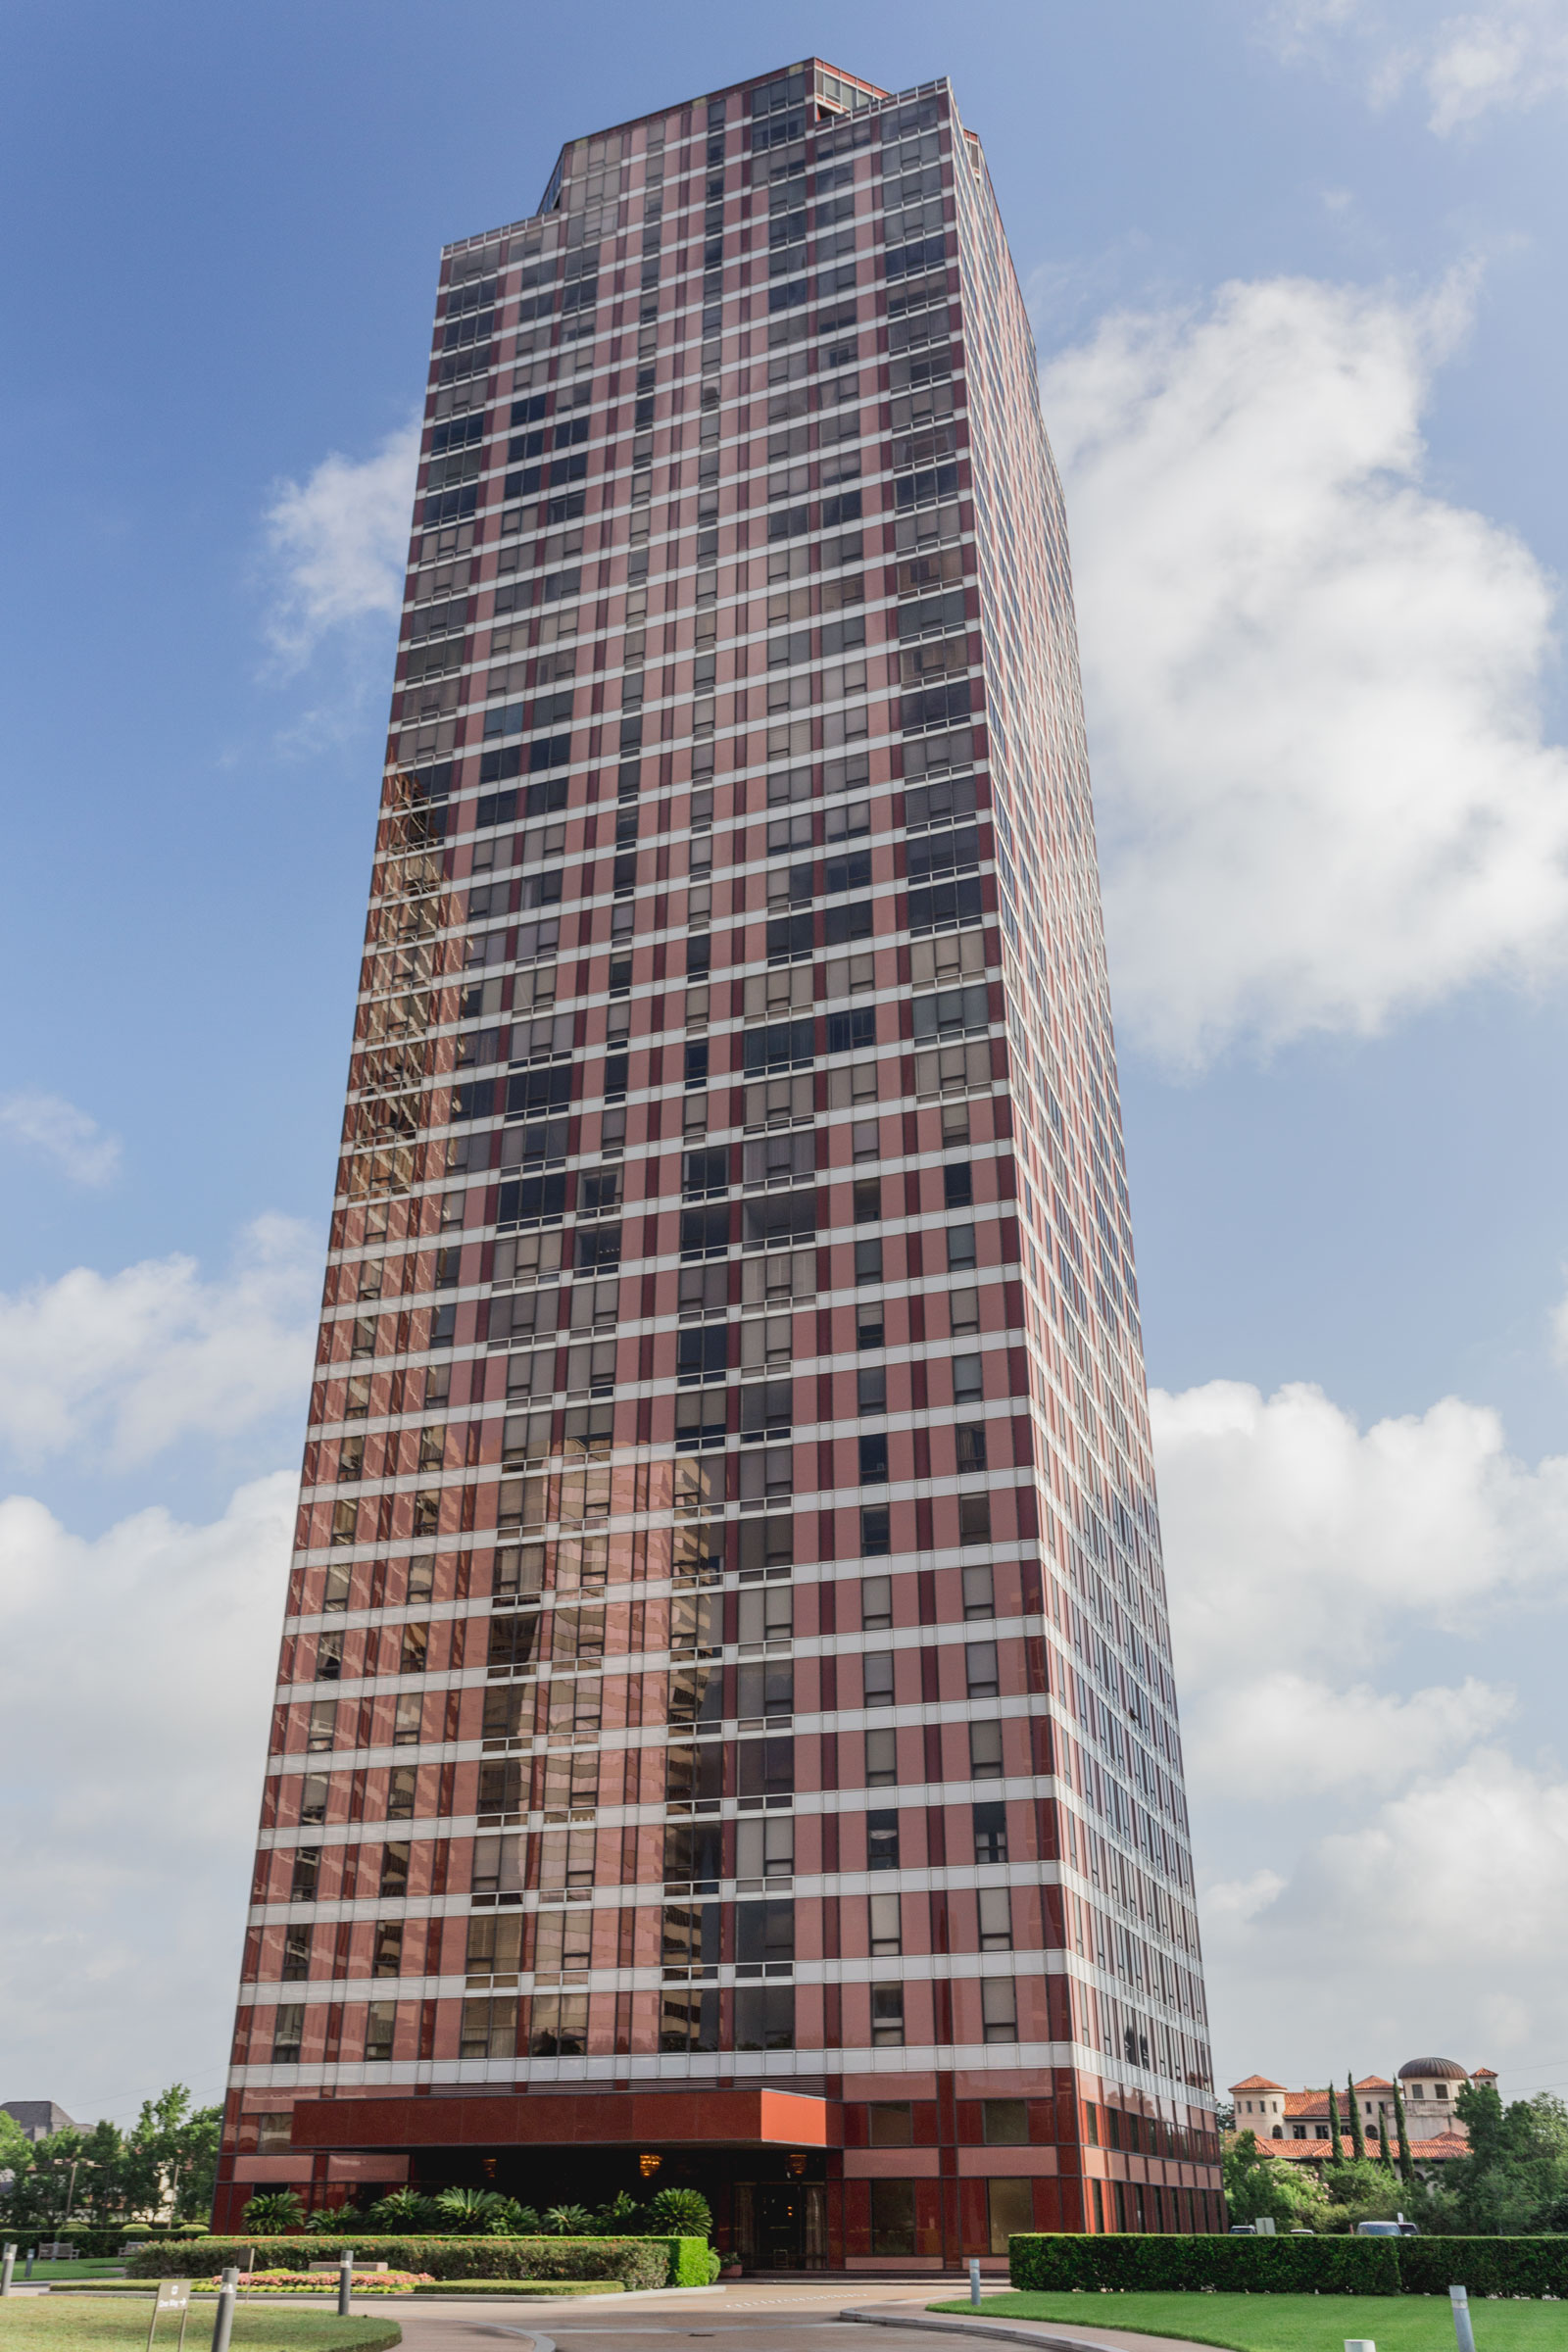 exterior of high-rise tower